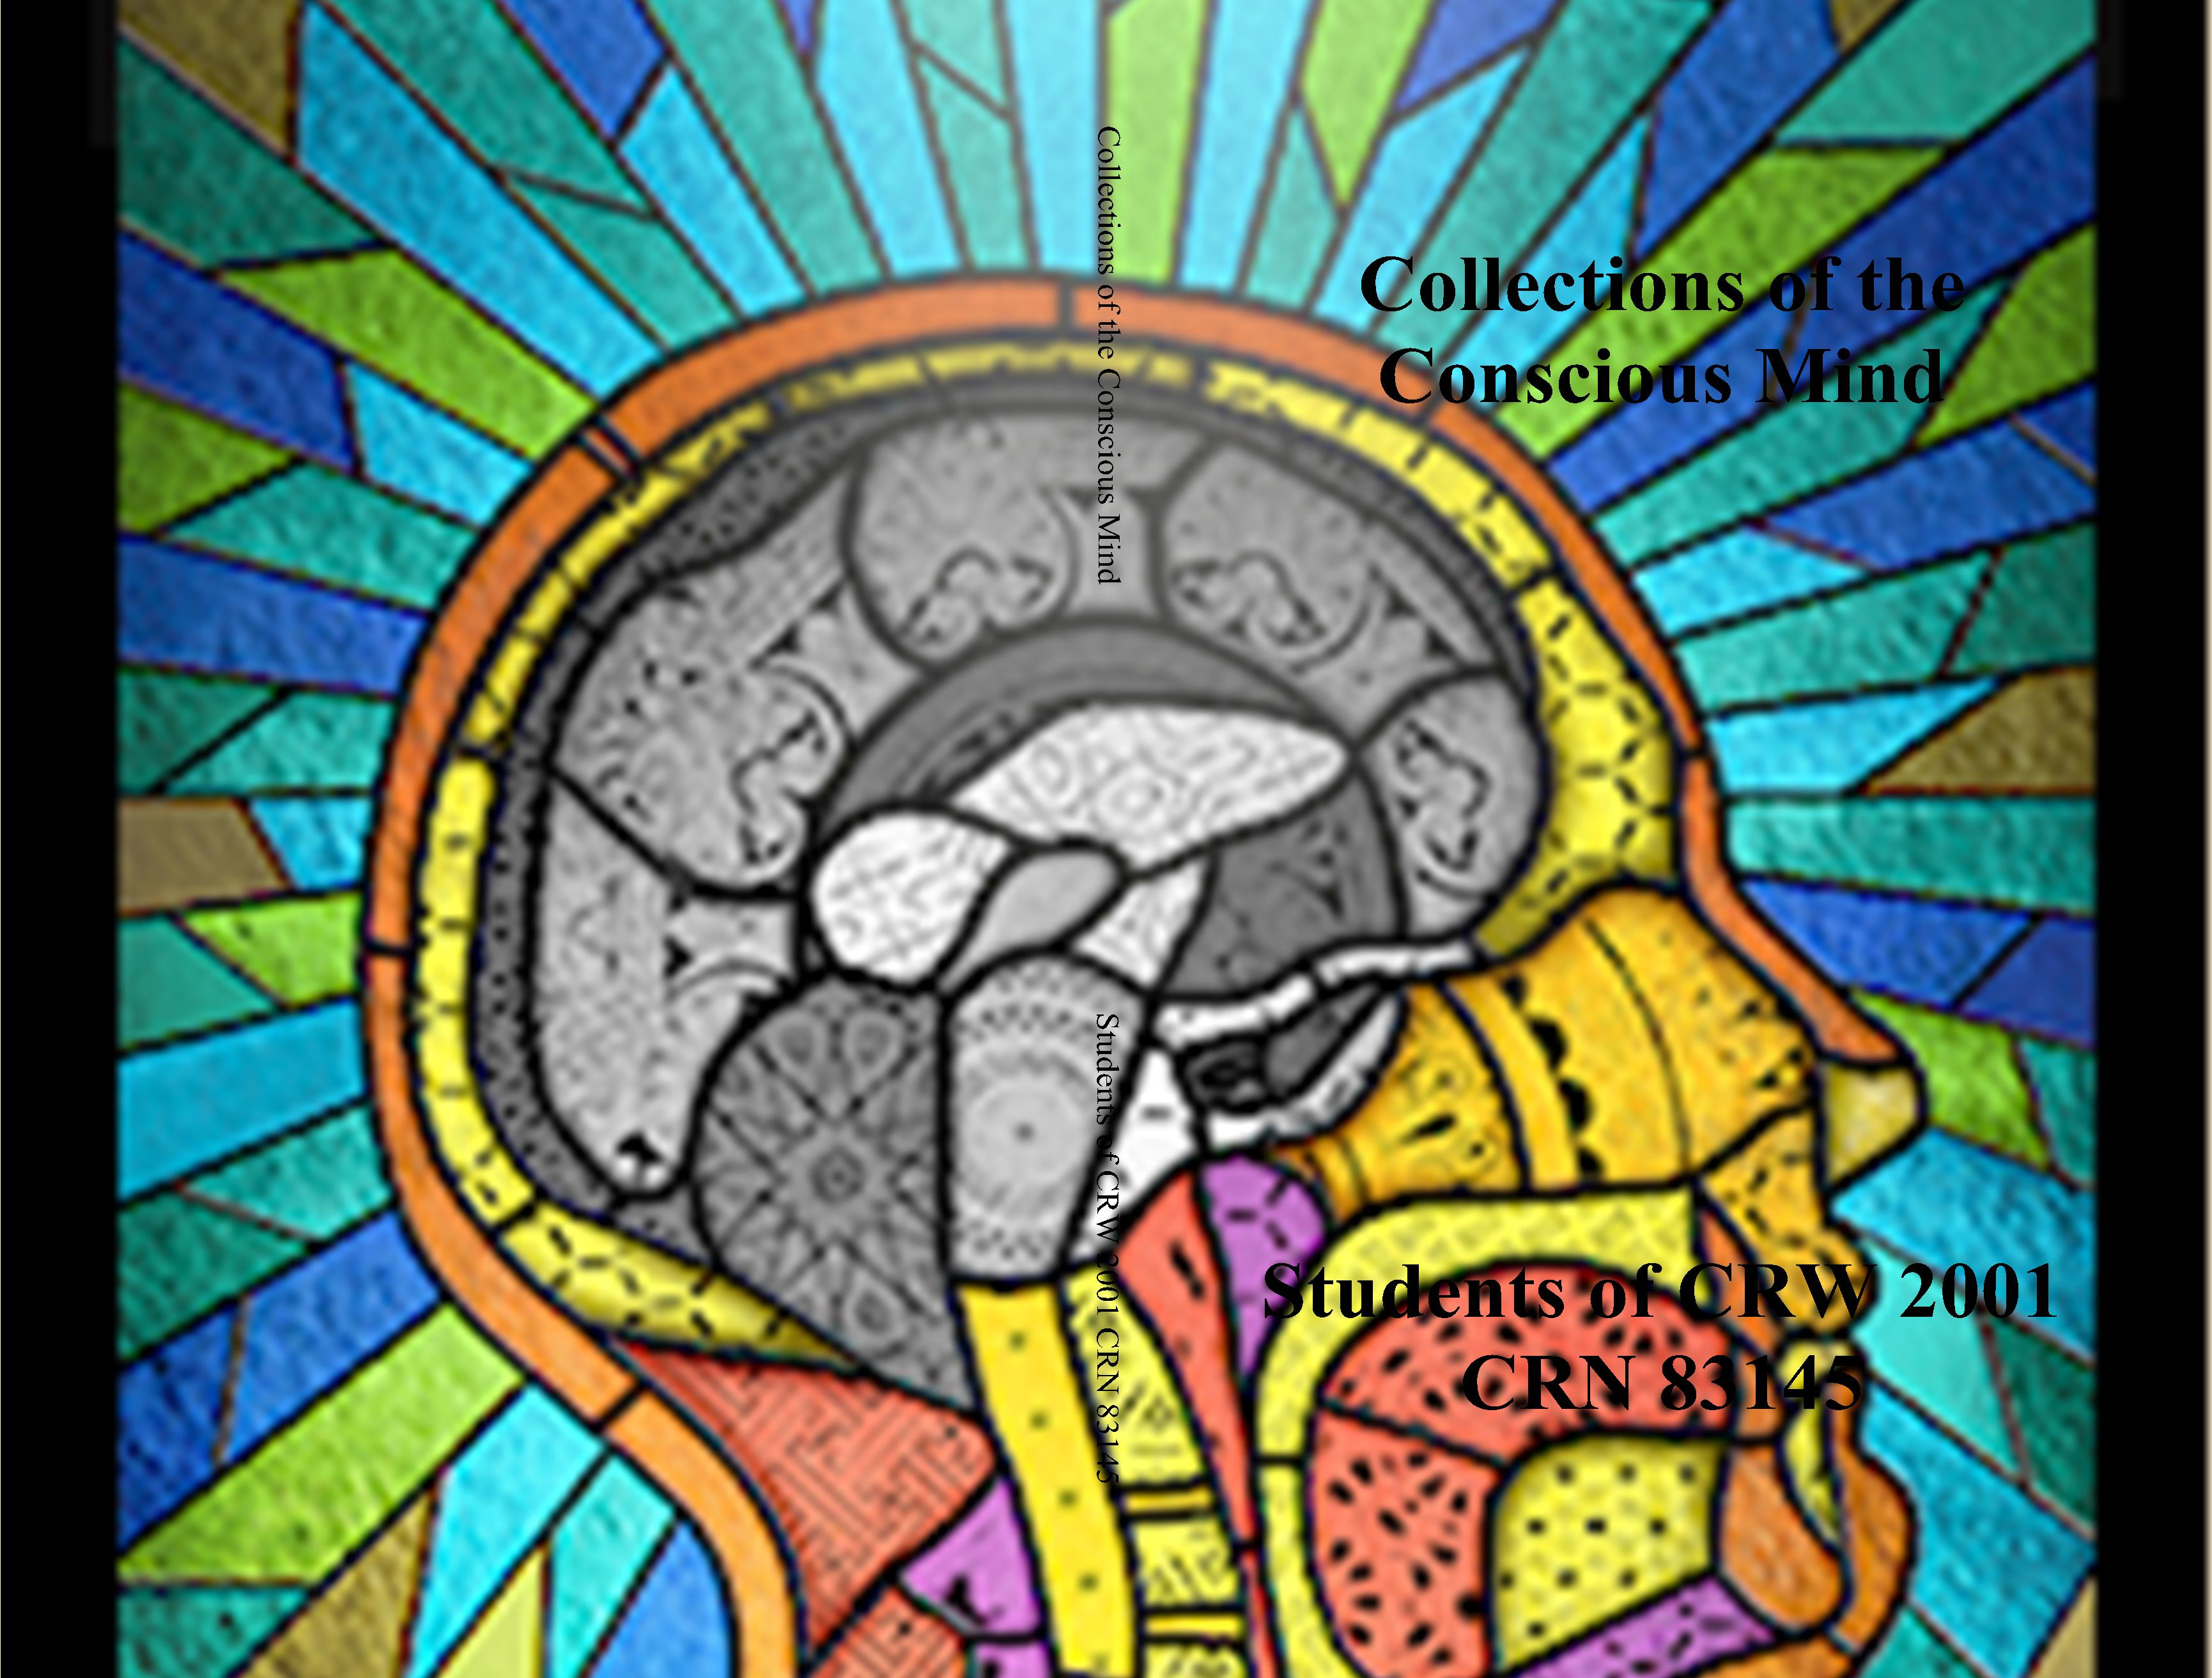 Collections of the Conscious Mind cover image